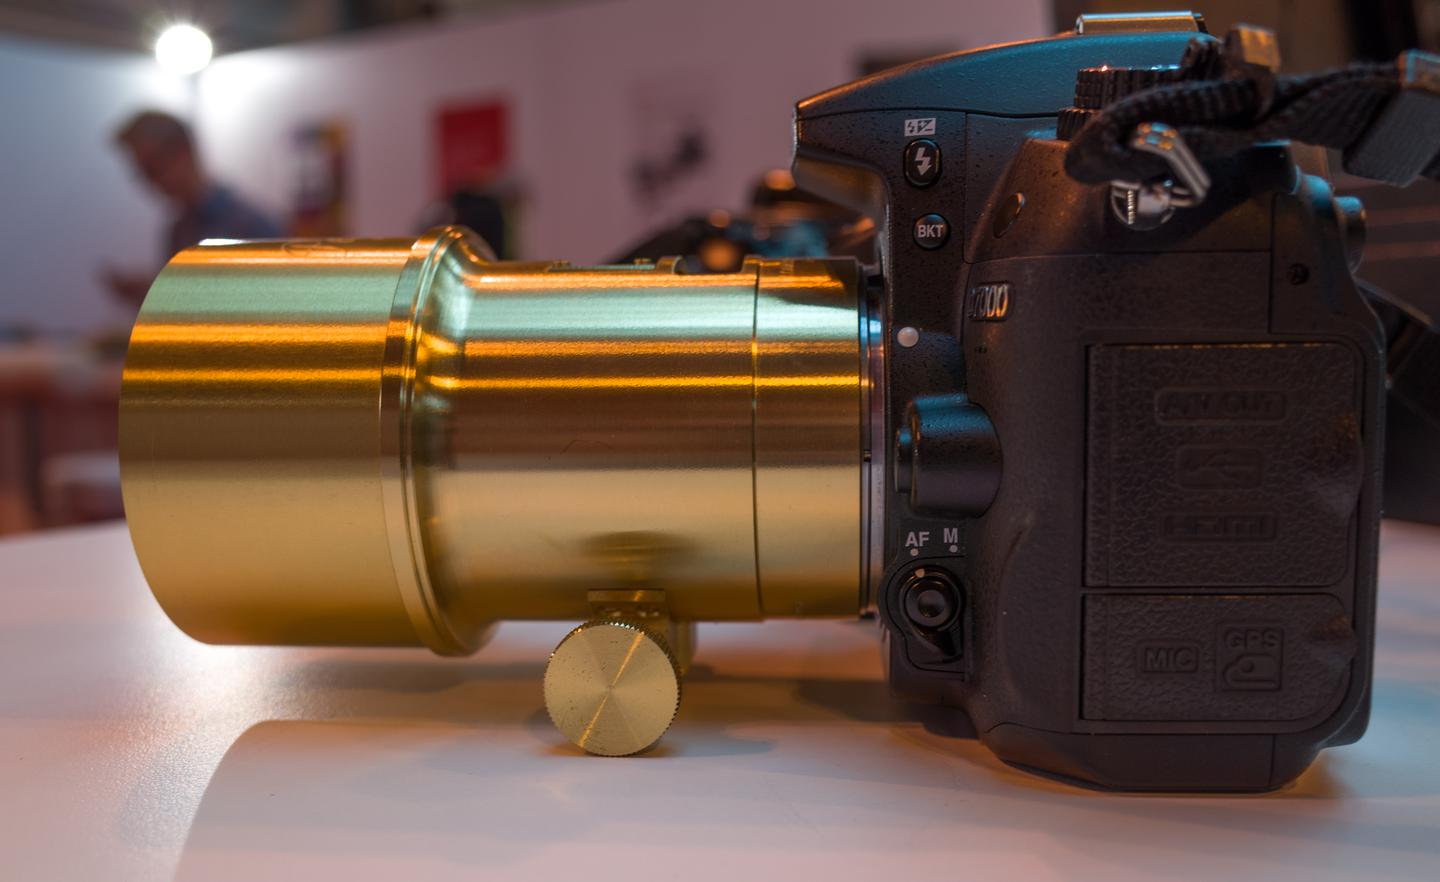 The large-headed screw towards the bottom of the Lomography New Petzval lens controls manual focus